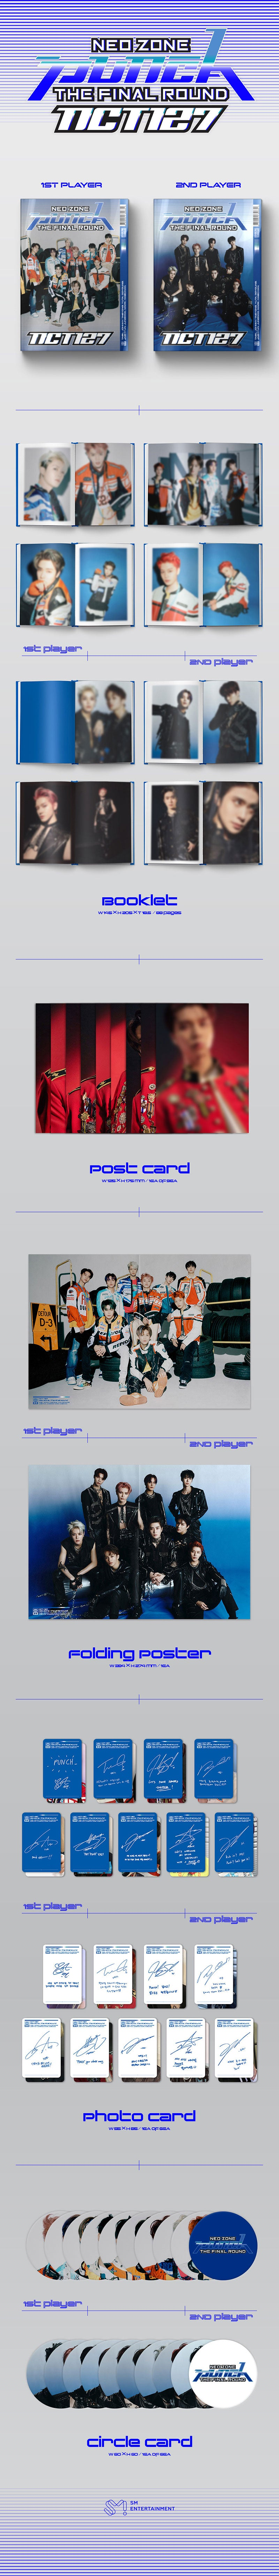 NCT 127 - 2nd Album Repackage [NCT #127 Neo Zone: The Final Round]